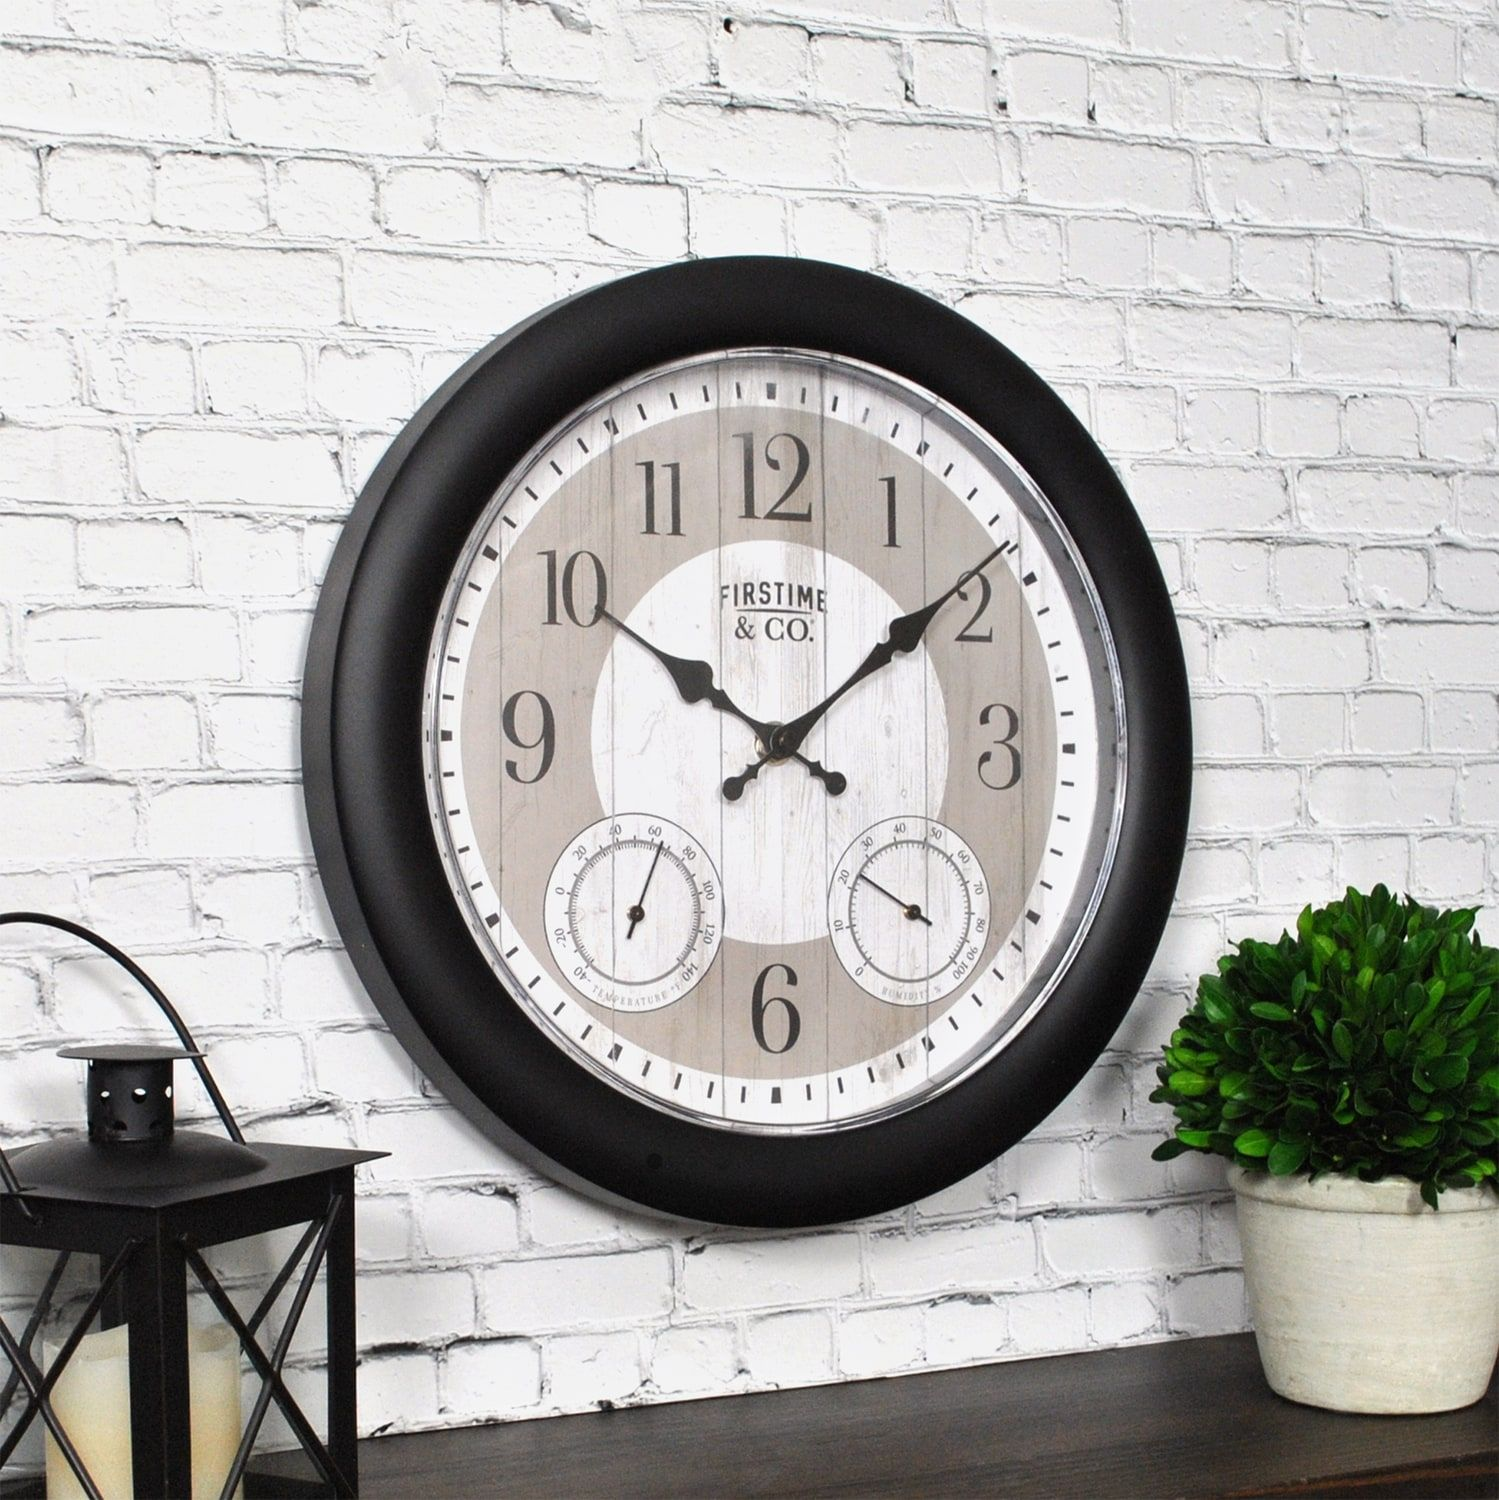 Firstime Co Summer Cottage Wall Clock Affiliate Summer Aff Firstime Cottage Clock In 2020 Outdoor Clock Outdoor Wall Clocks Outdoor Walls